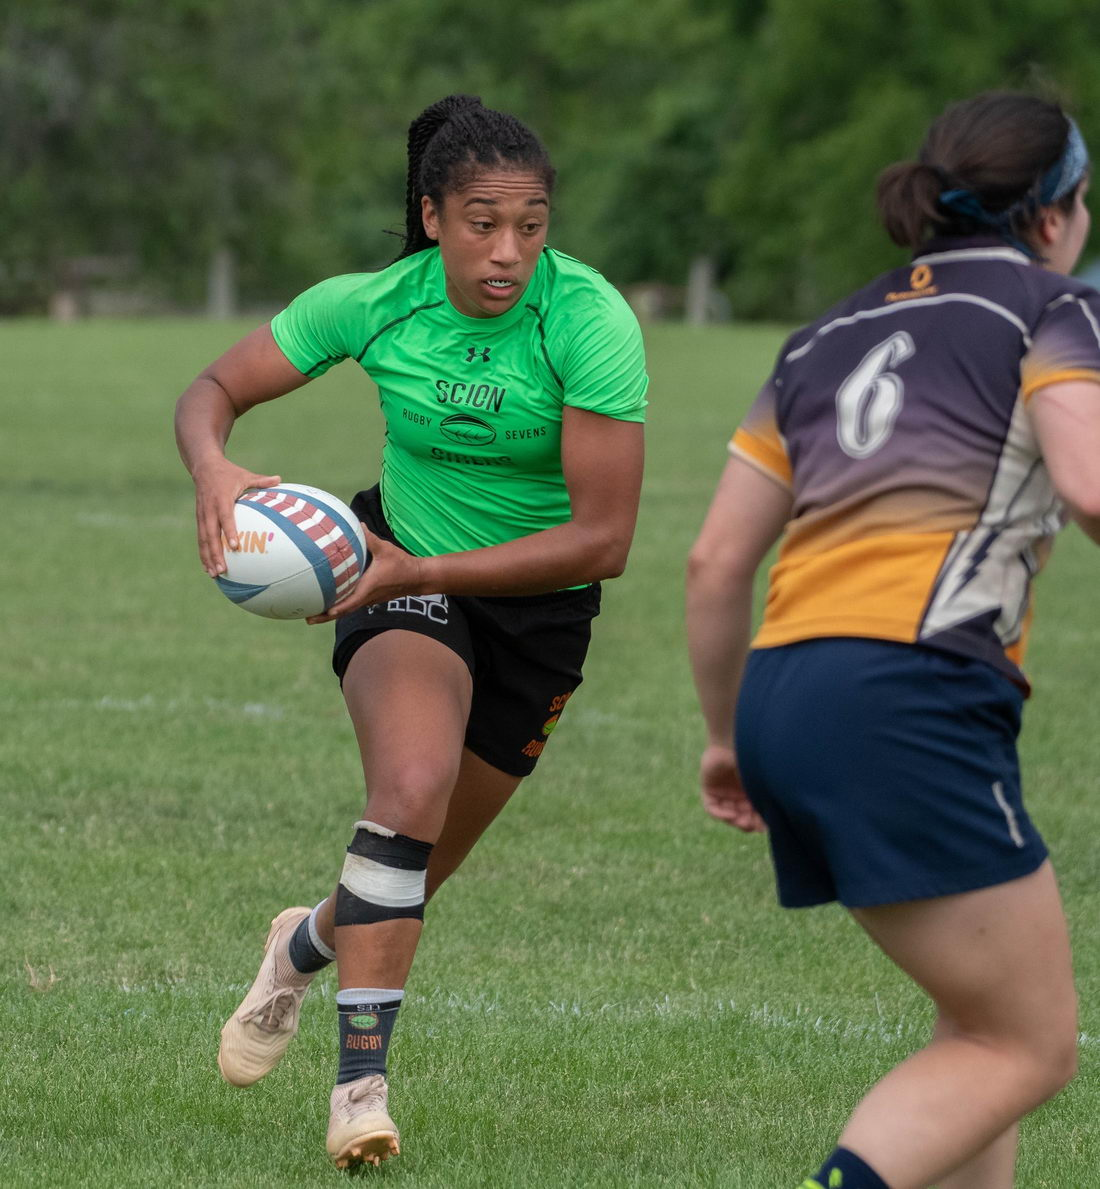 Winner of the JetBlue Vacations package to Barbados, Jade McGrath, playing for the USA Scion Sirens.